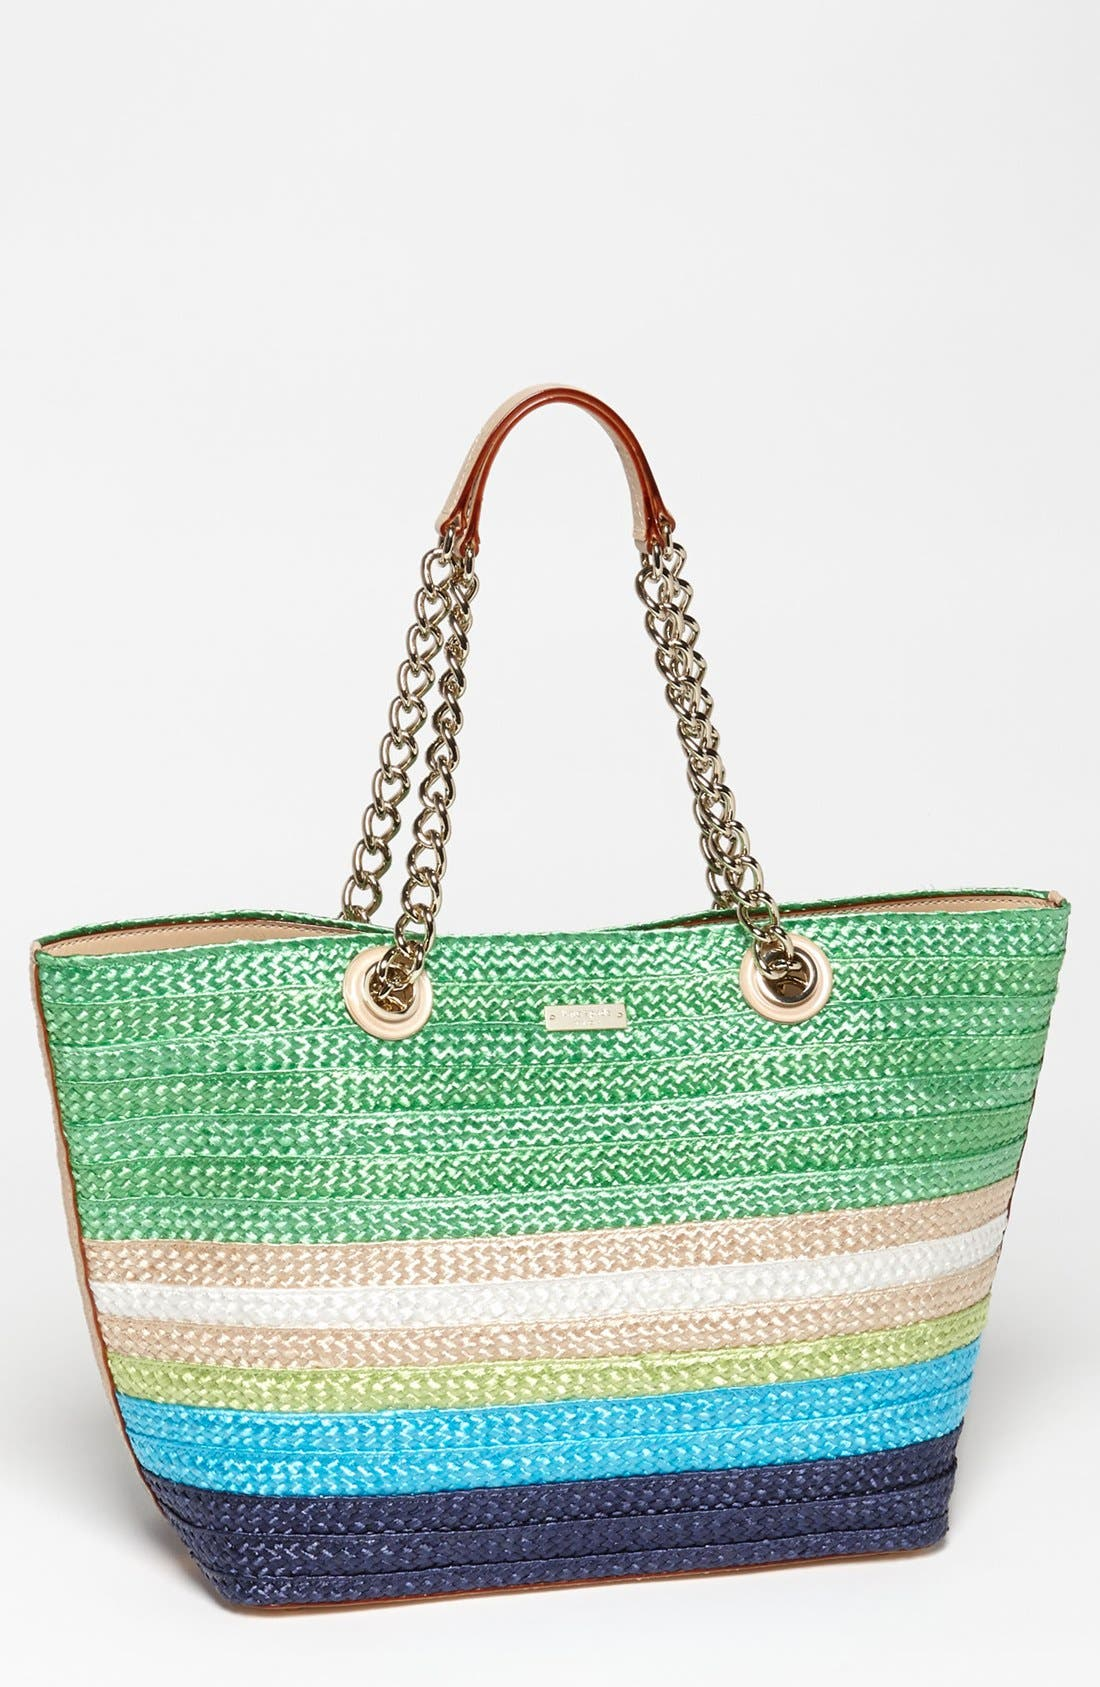 Main Image - kate spade new york 'chelsea market - small coal' straw tote